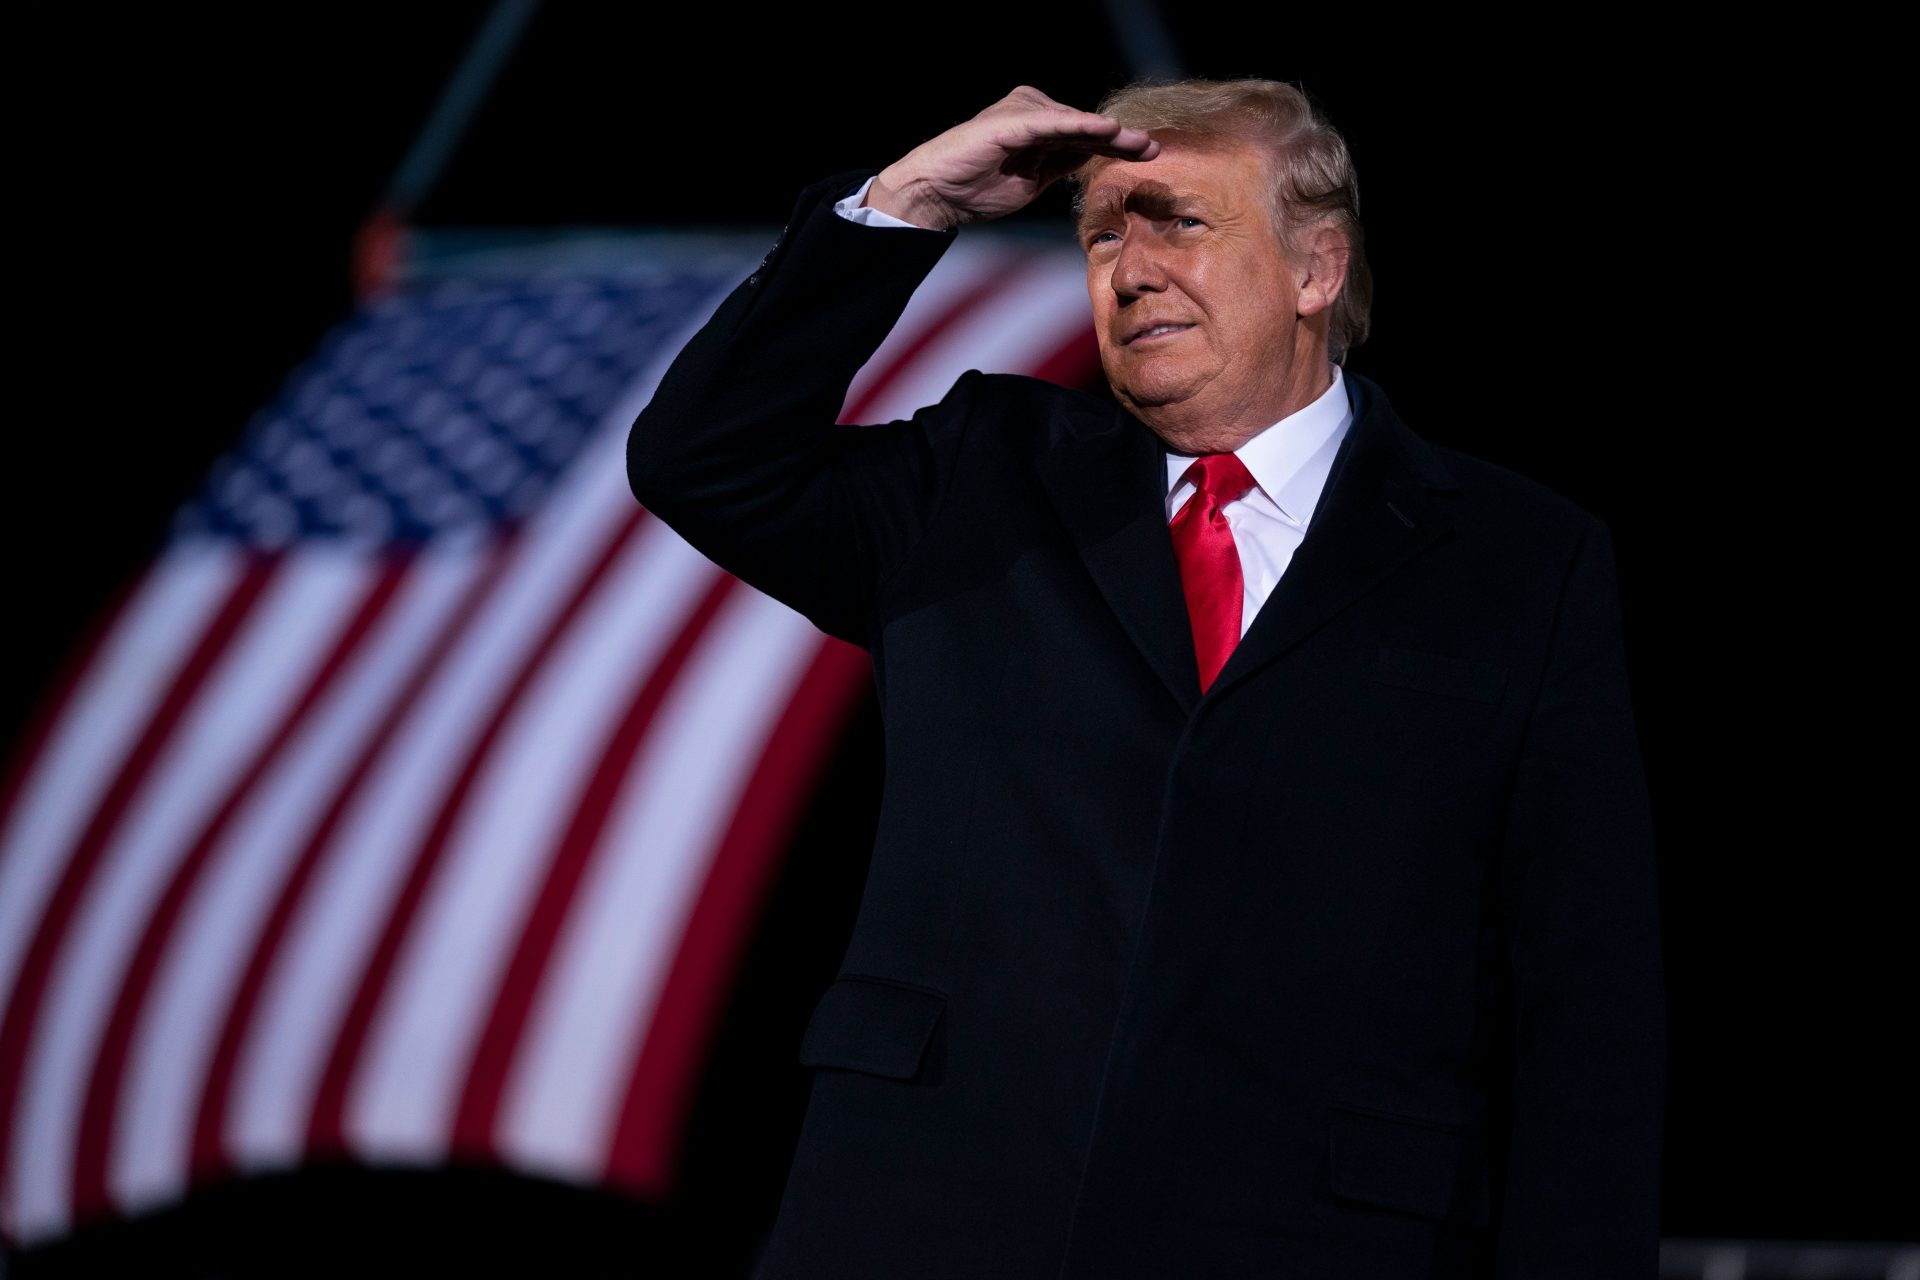 Mandatory Credit: Photo by Evan Vucci/AP/Shutterstock (11696349a)President Donald Trump arrives to speak at a campaign rally for Sen.